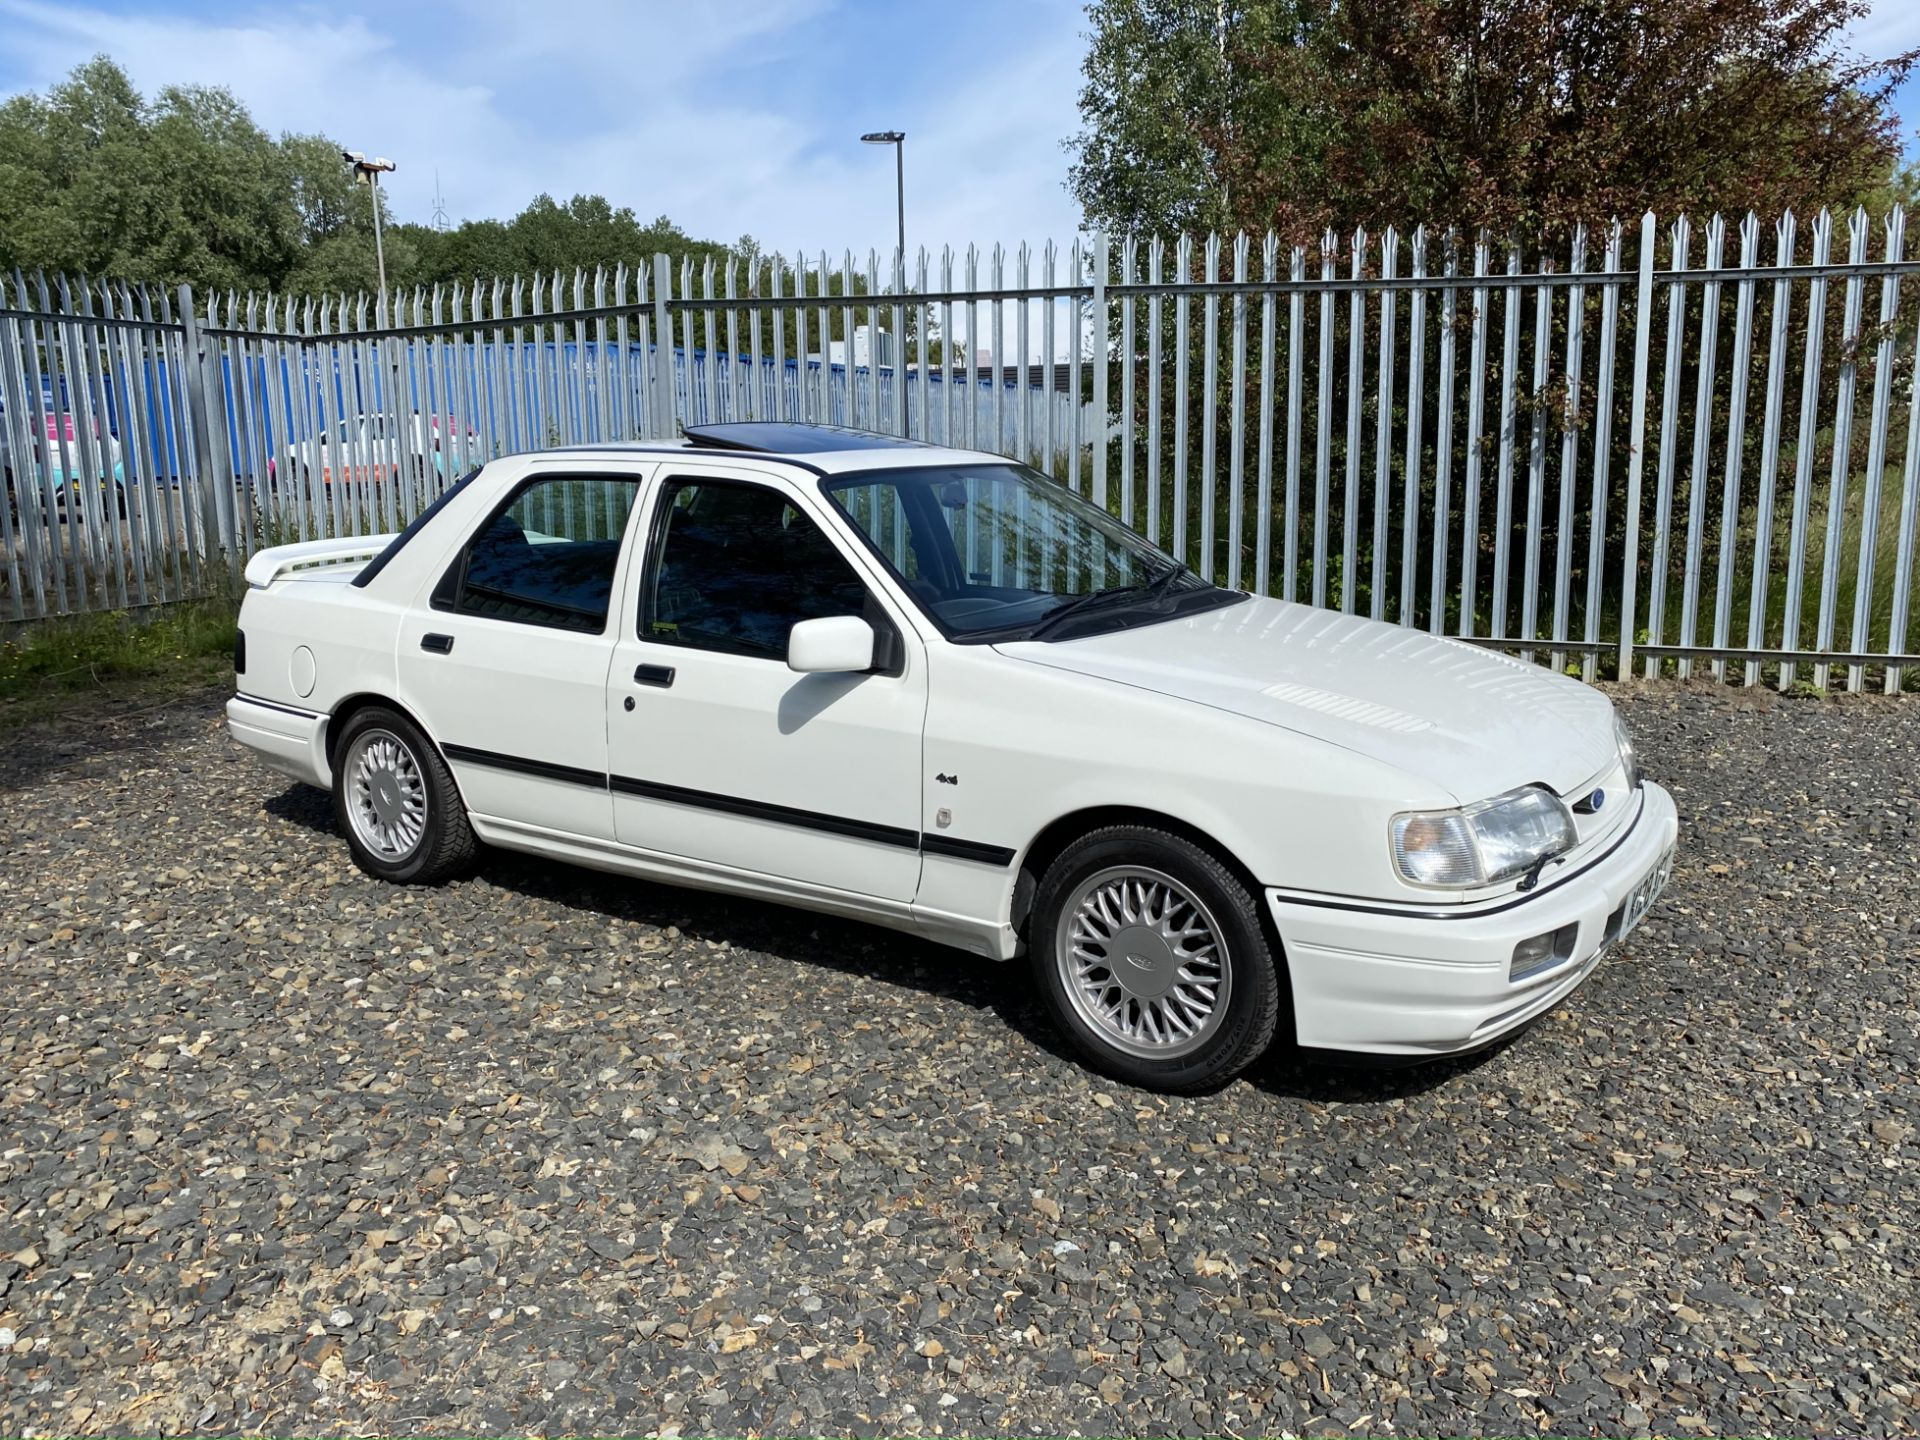 Ford Sierra Sapphire Cosworth 4x4 - Image 2 of 55